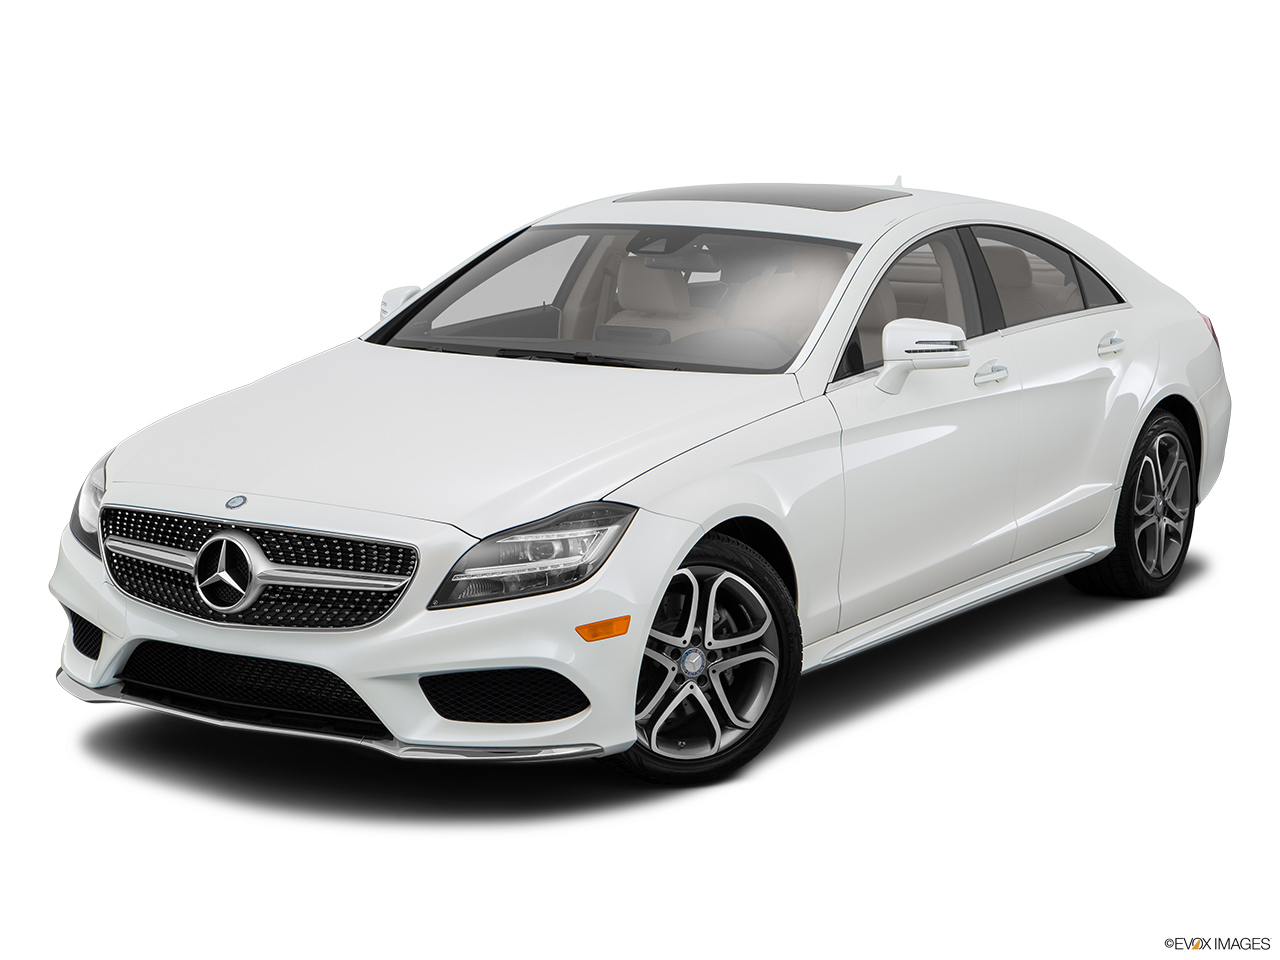 Mercedes benz cls class 2016 cls 400 in saudi arabia new for Mercedes benz cls class price